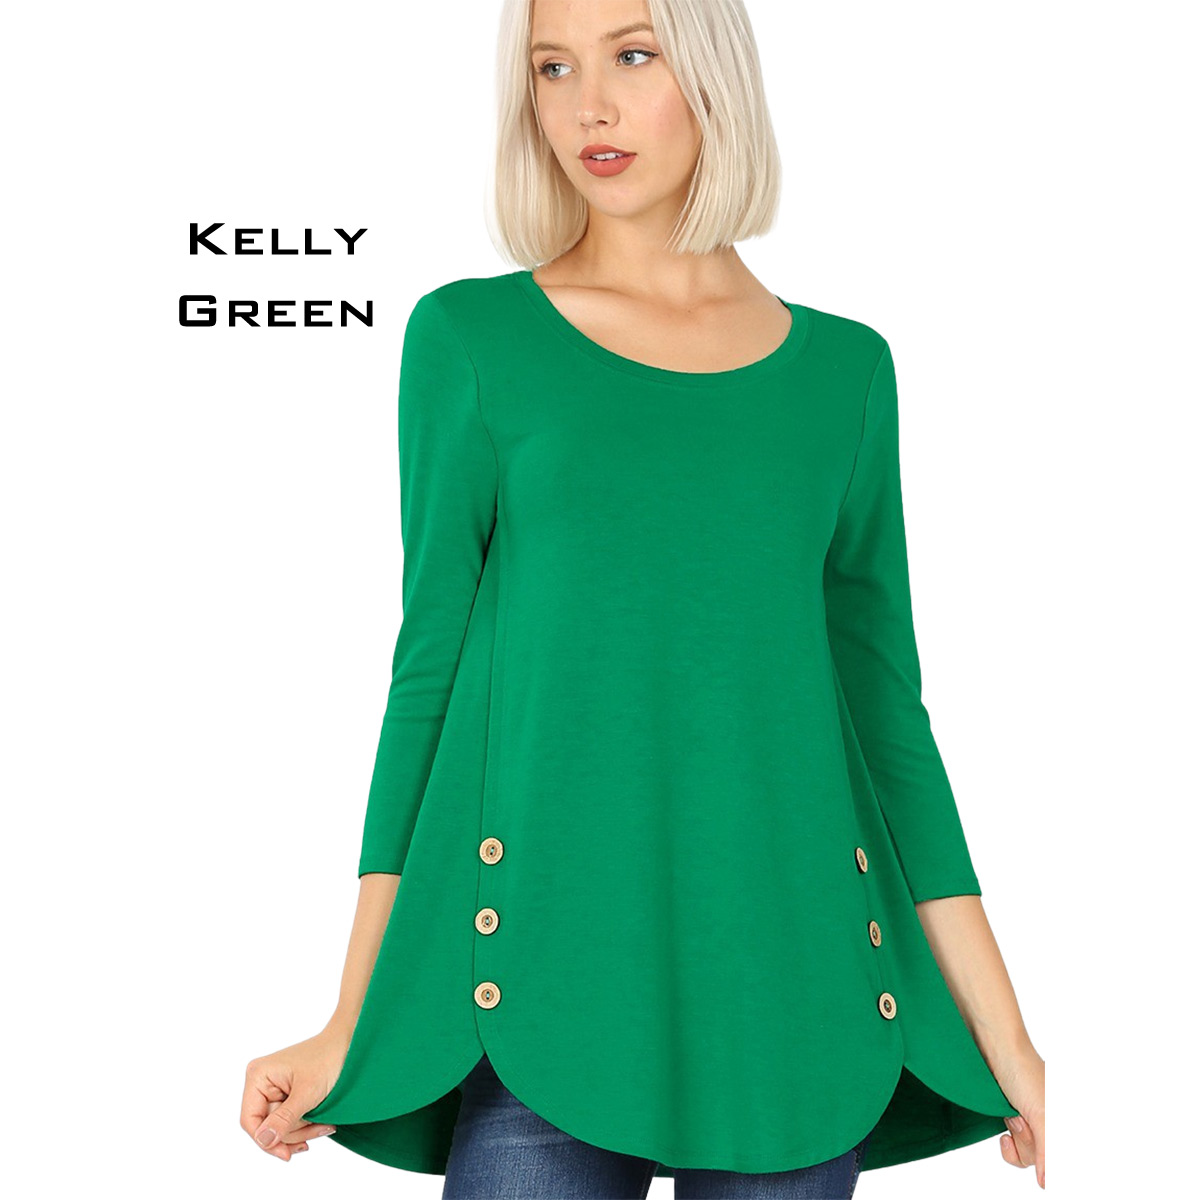 KELLY GREEN 3/4 Sleeve Side Wood Buttons Top 2032